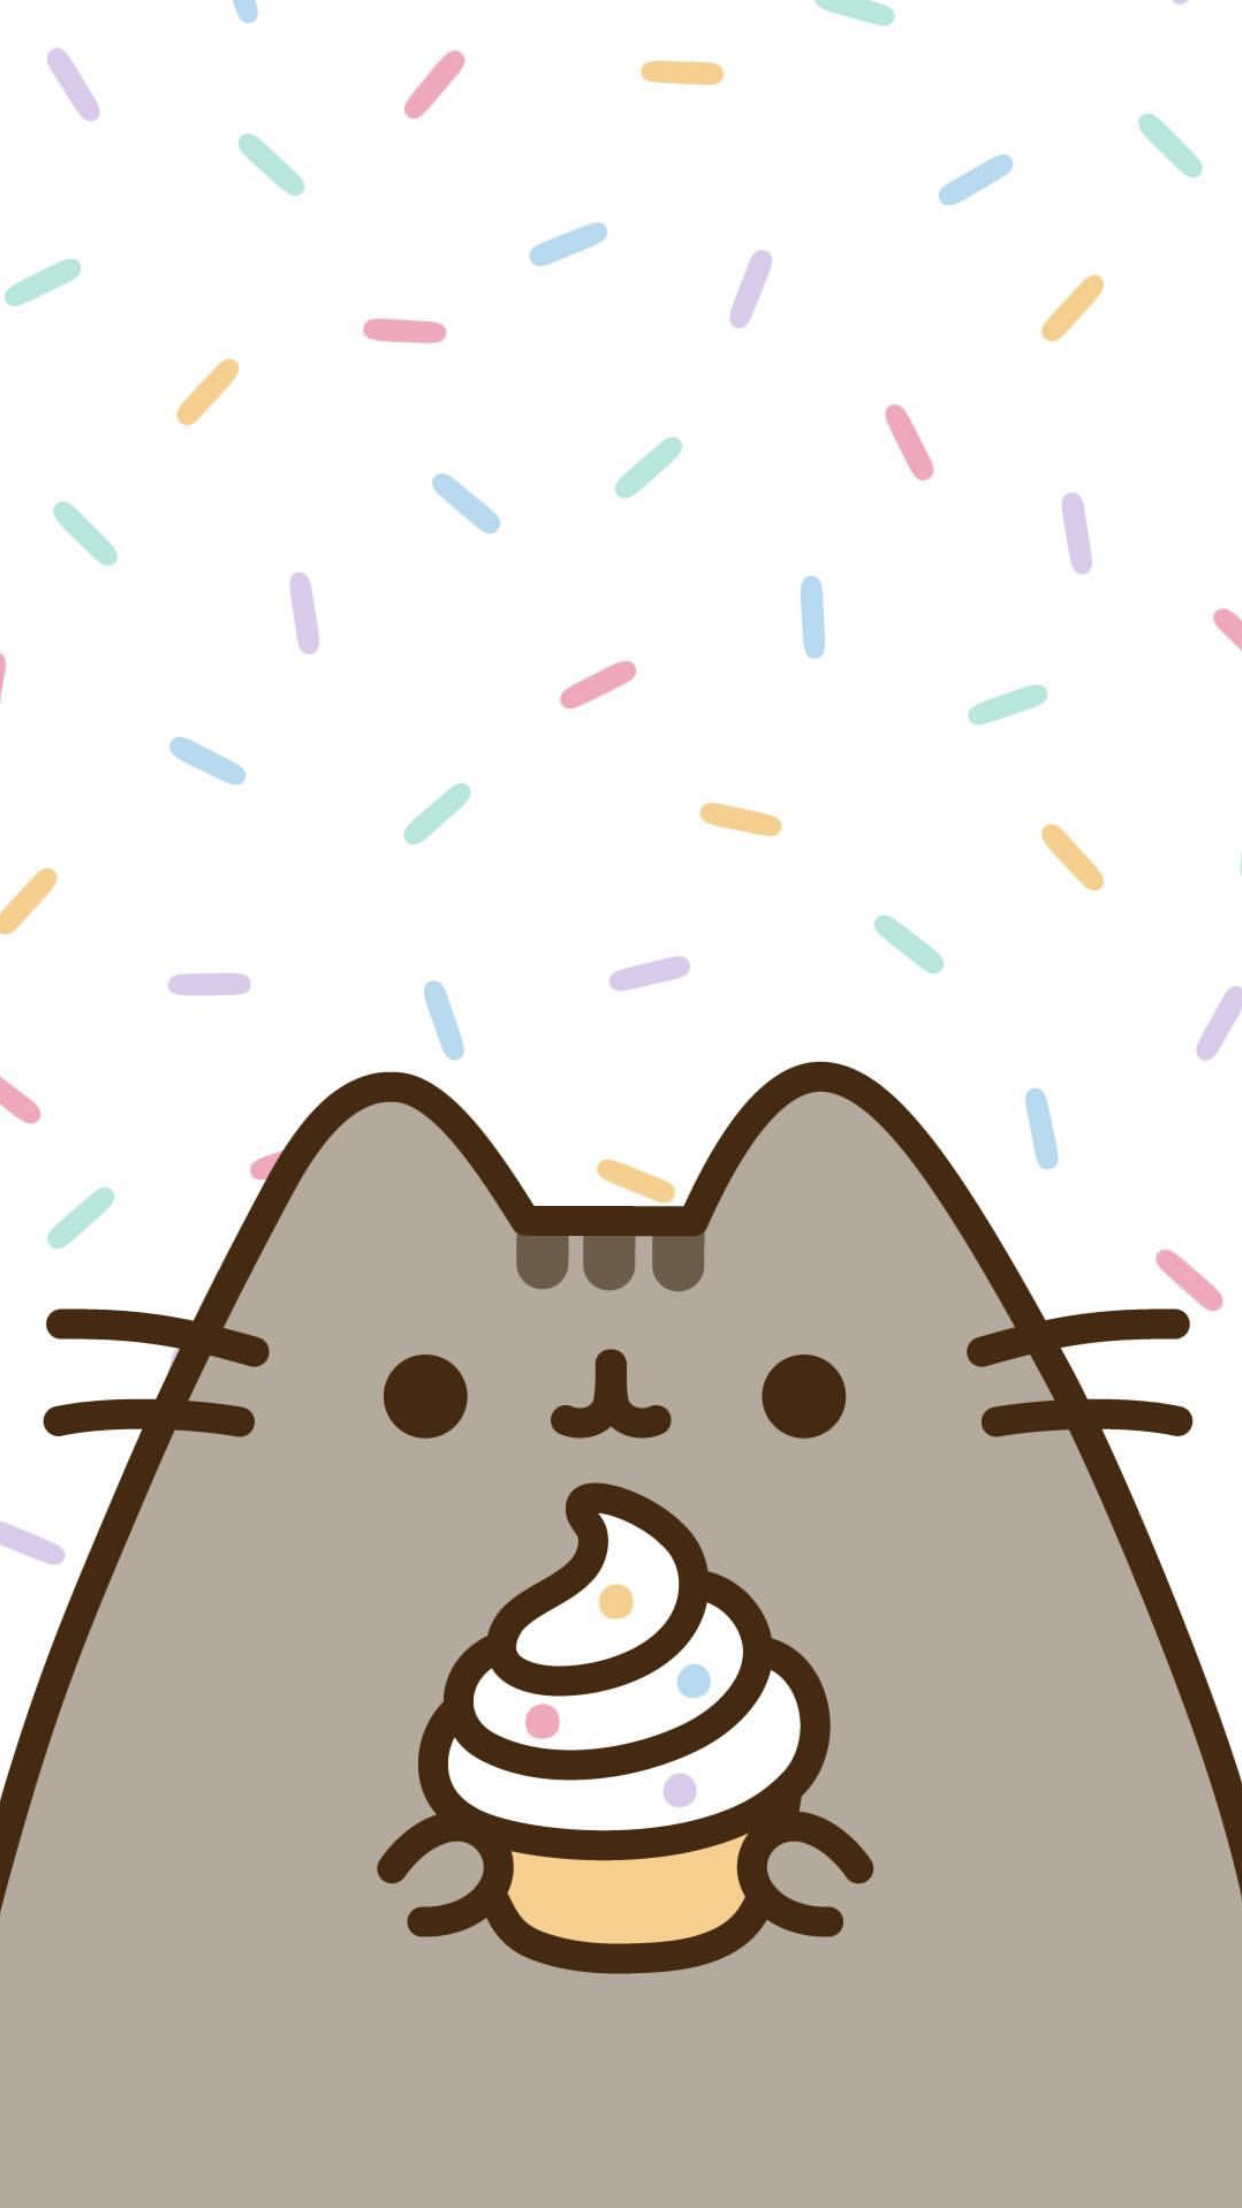 Pusheen The Cat Iphone Wallpaper Cute Wallpapers